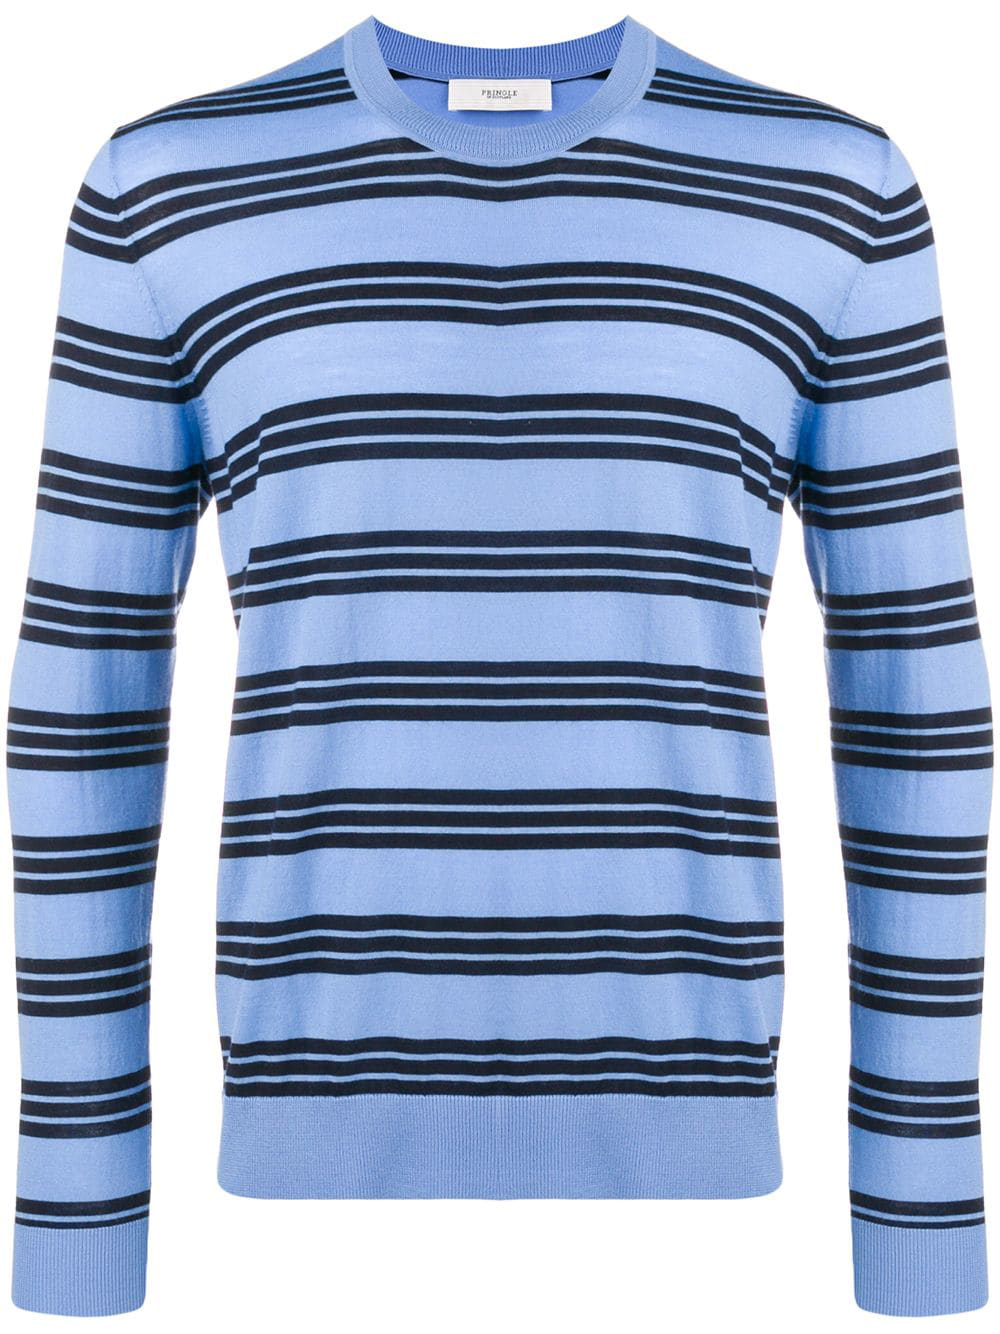 0cf1d42b958c7e Pringle Of Scotland Striped Pullover - Blue In Thh1 Woad/Ink | ModeSens